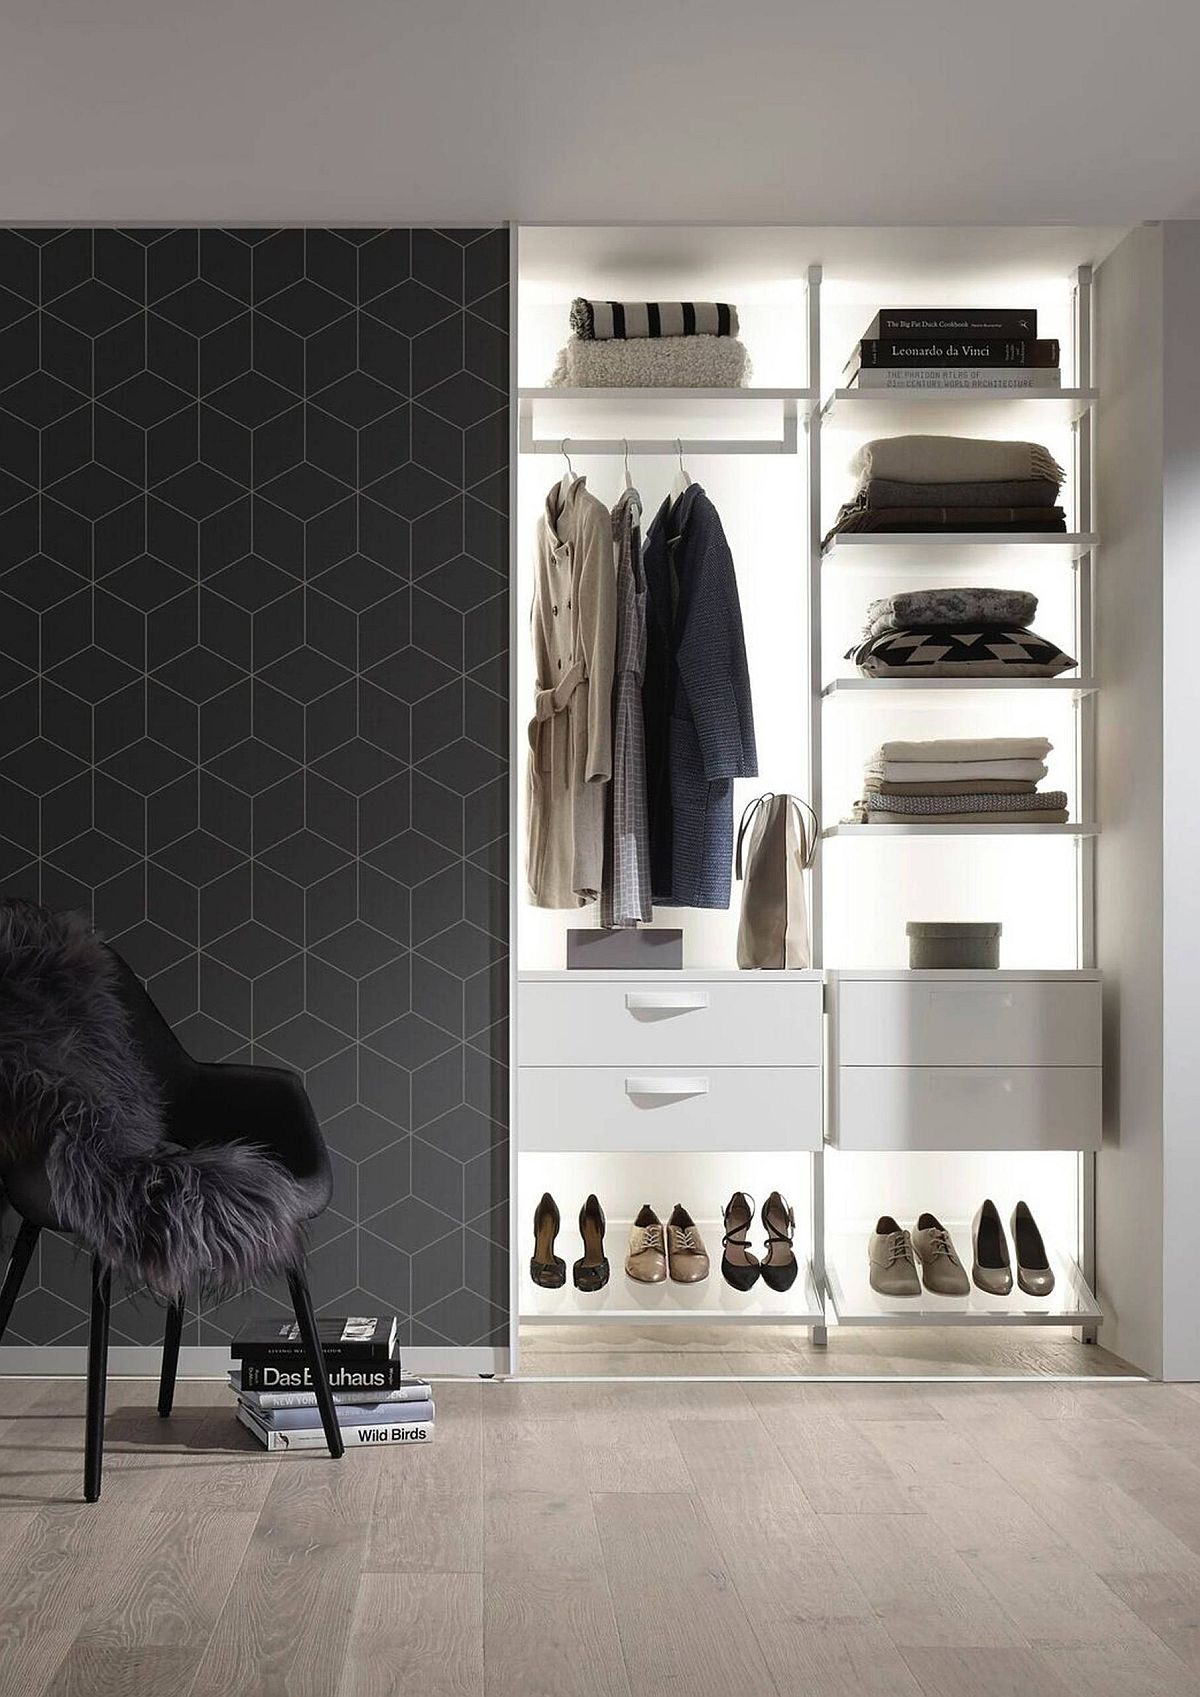 Chic and gorgeously-lit bedroom wardrobe is perfectly designed to meet the needs of the homeowner